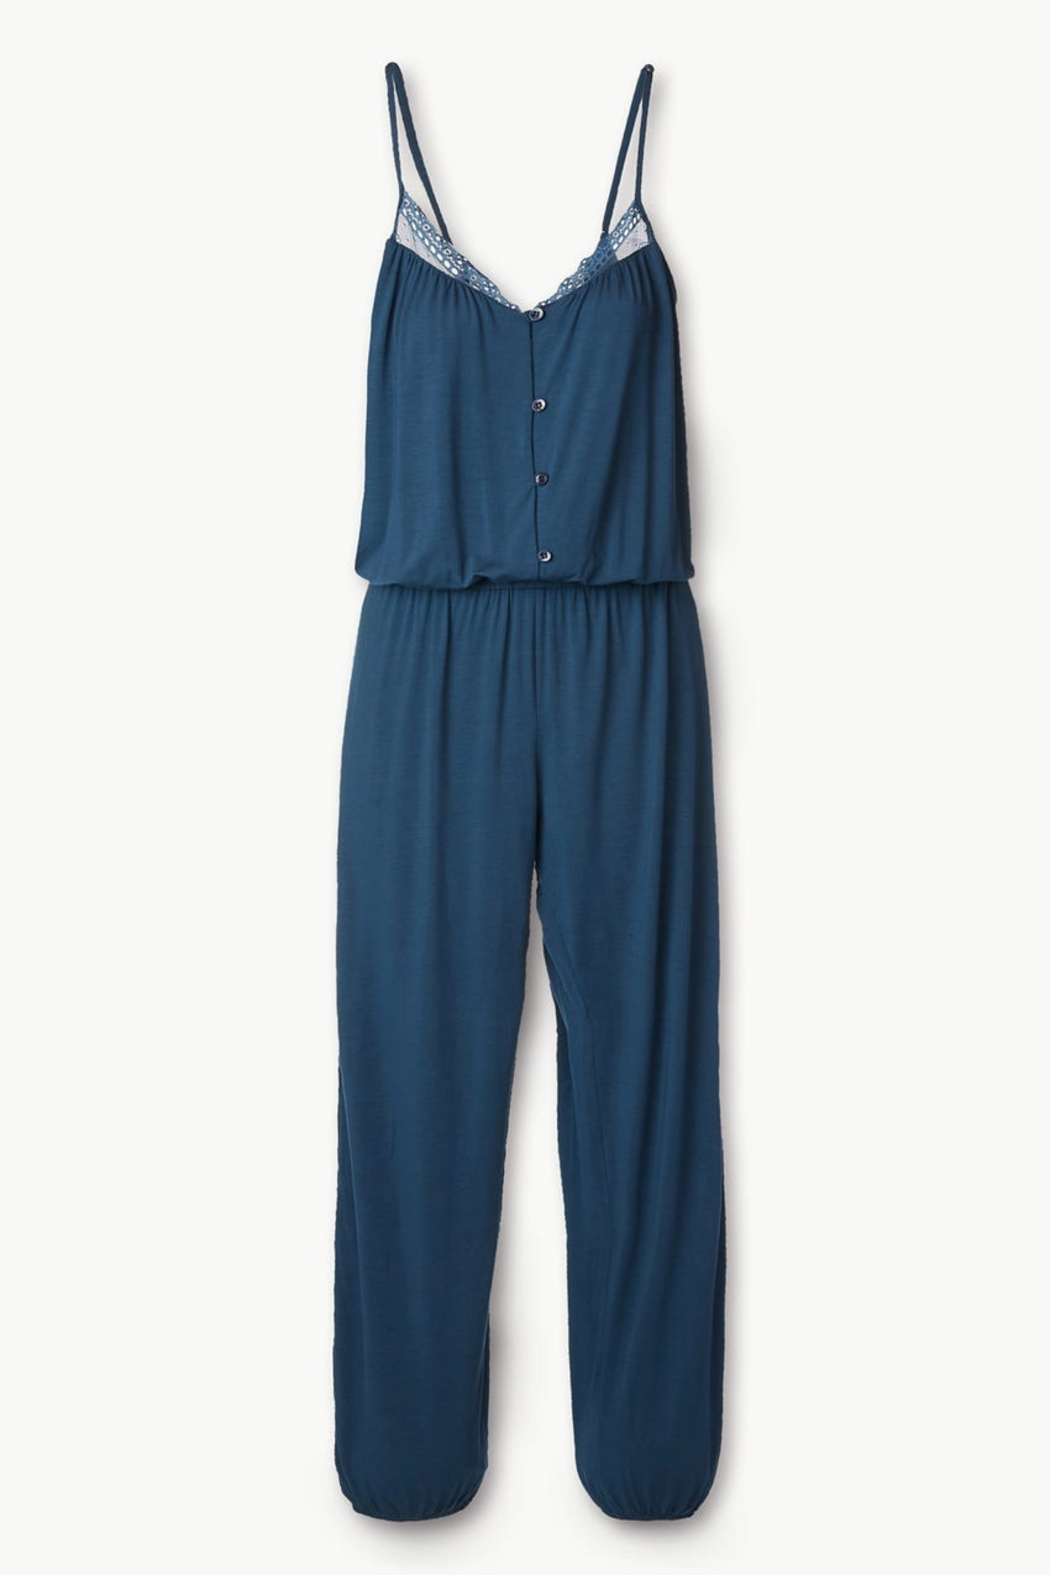 Eberjey Intimates Eberjey Lucie Button Down Jumpsuit - Side Cropped Image